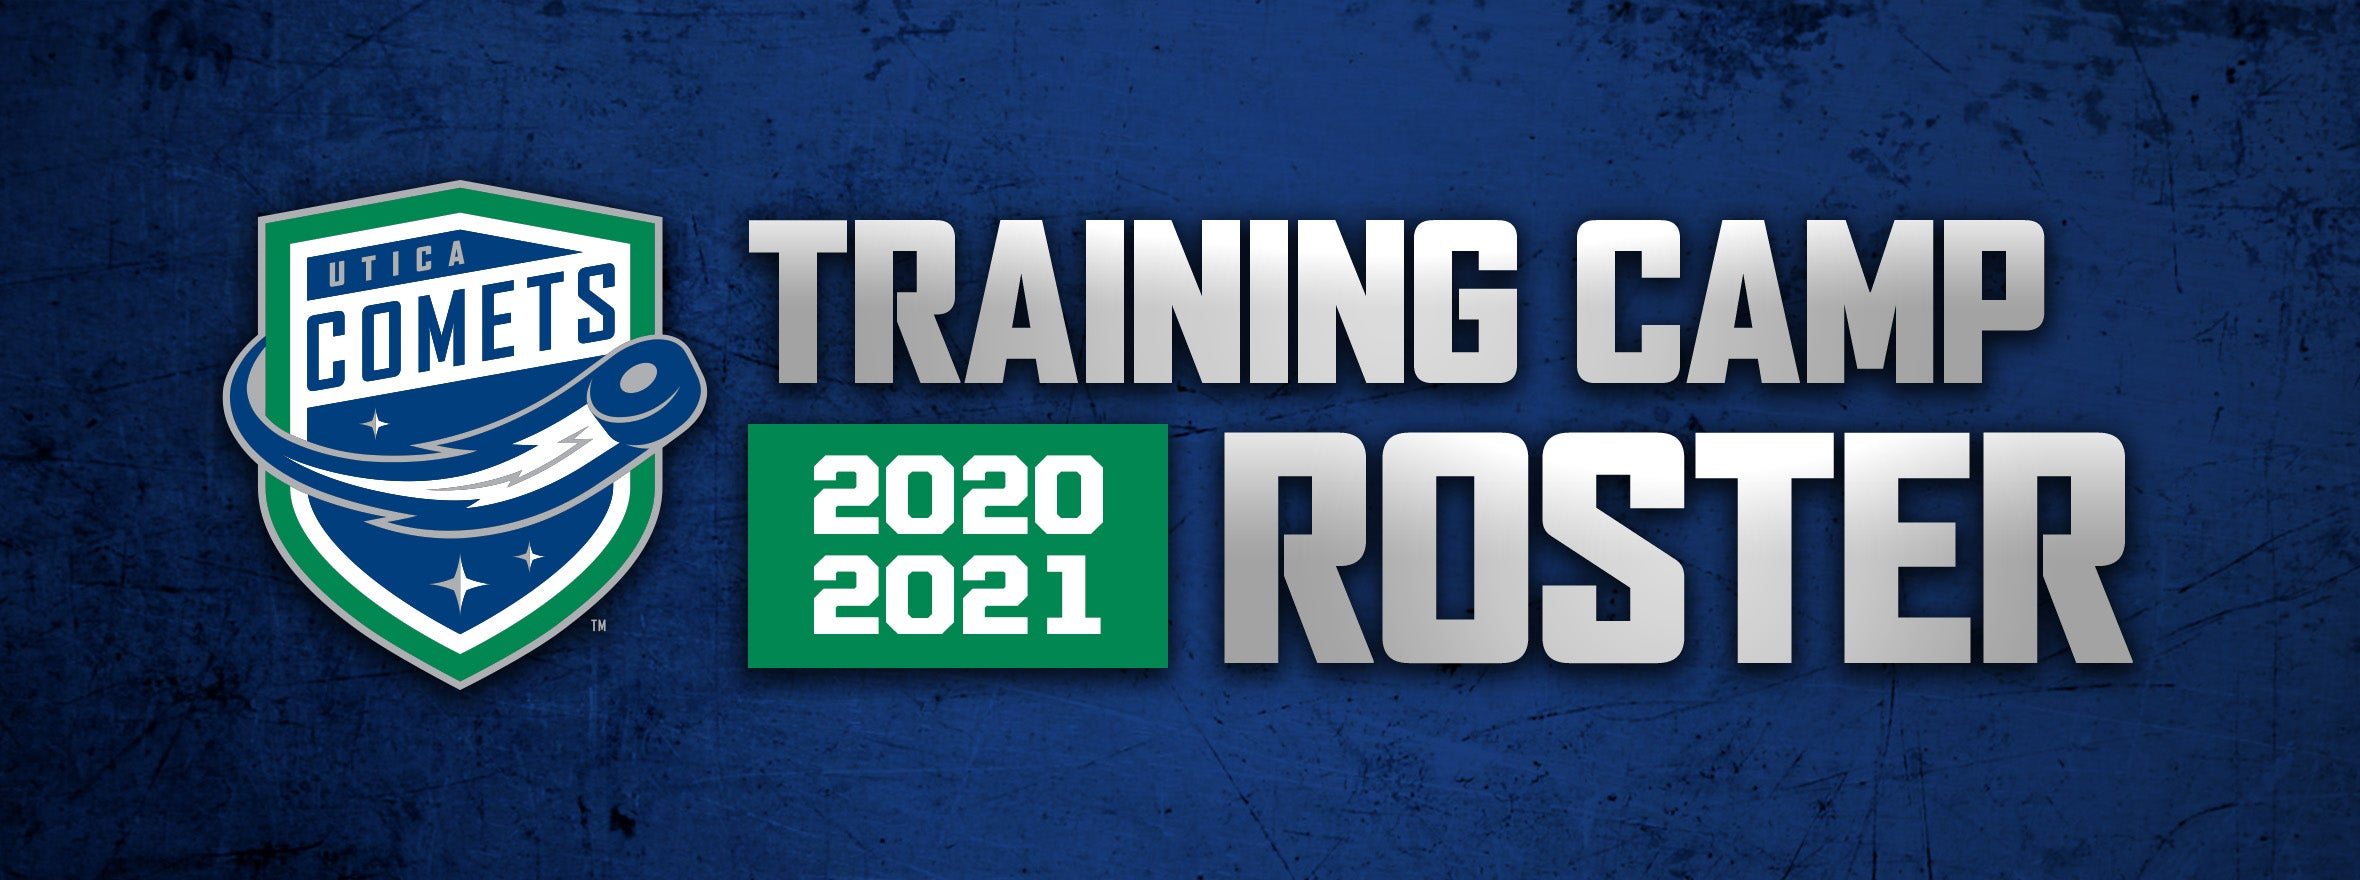 2020-2021 COMETS TRAINING CAMP ROSTER